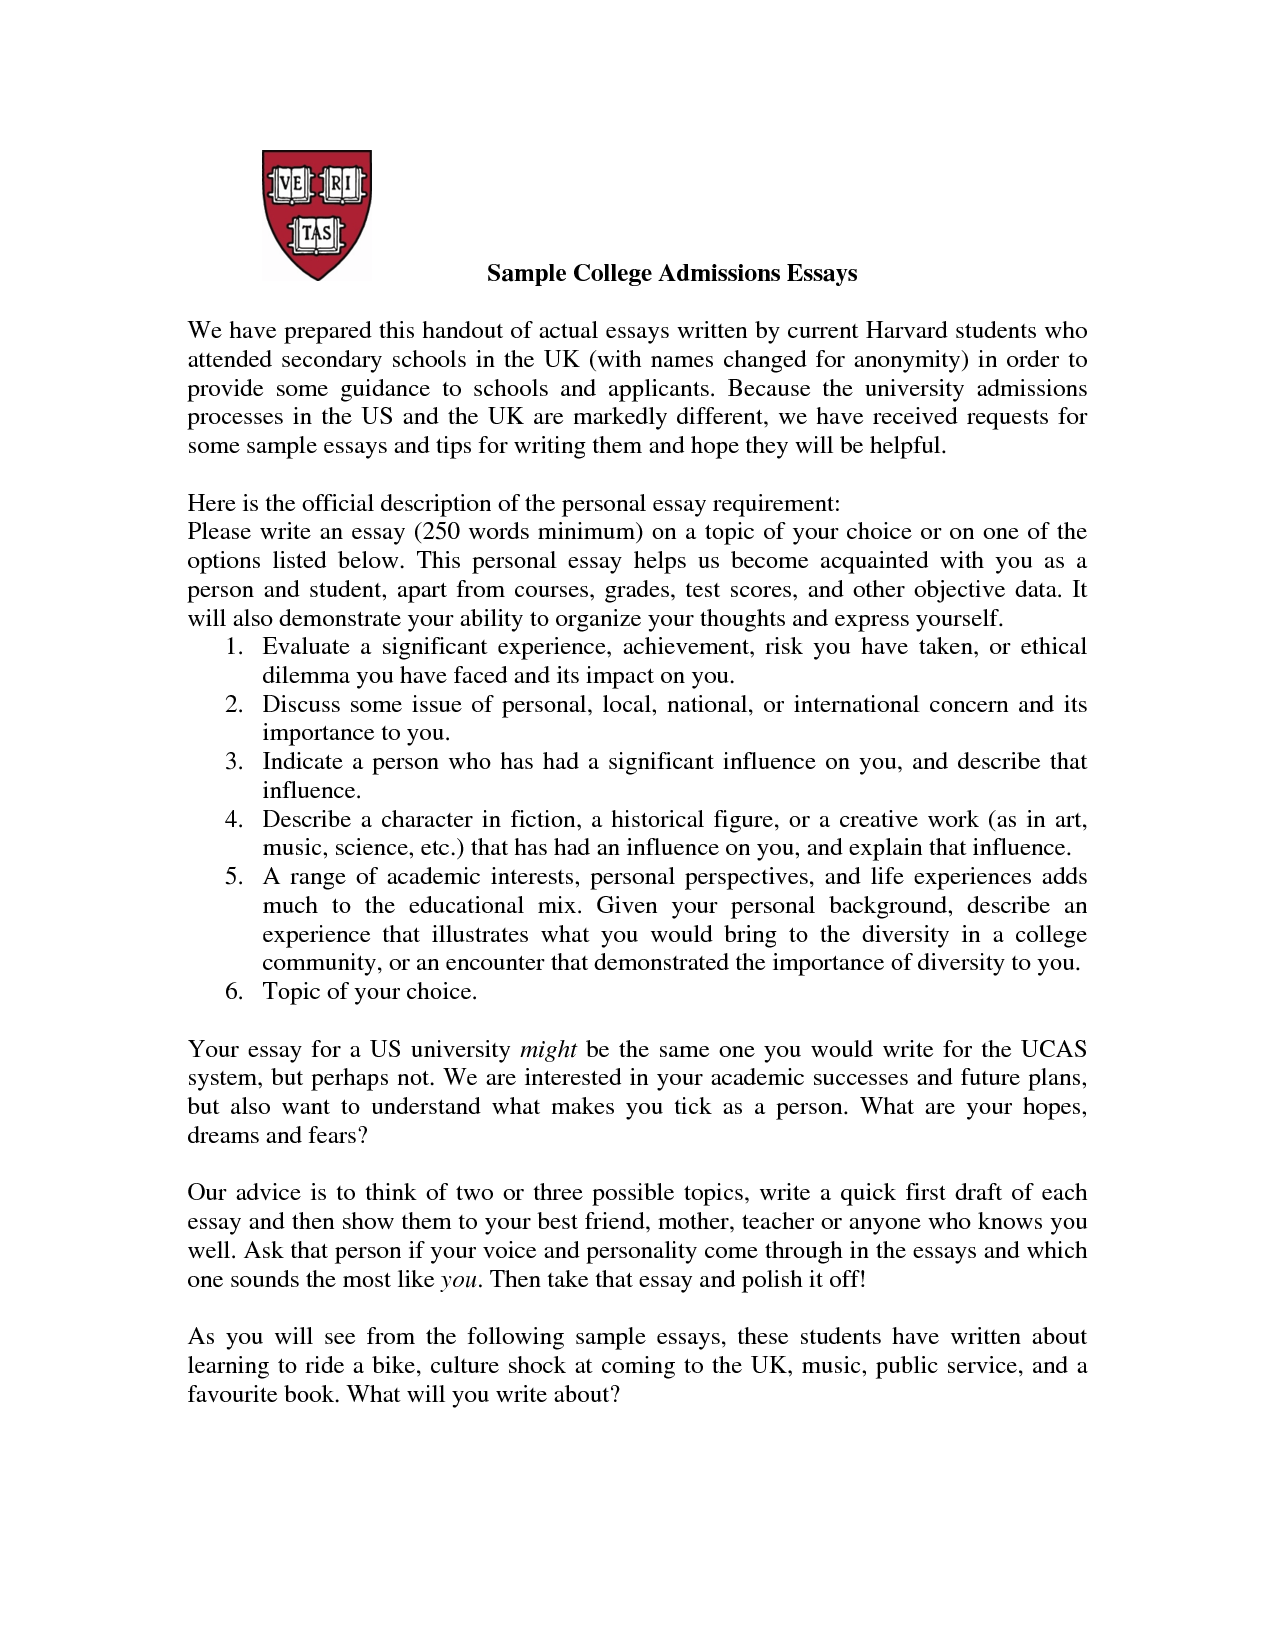 025 Essay Example College Heading What To Write Application About Incredible Personal Admission Format Admissions Sample Full